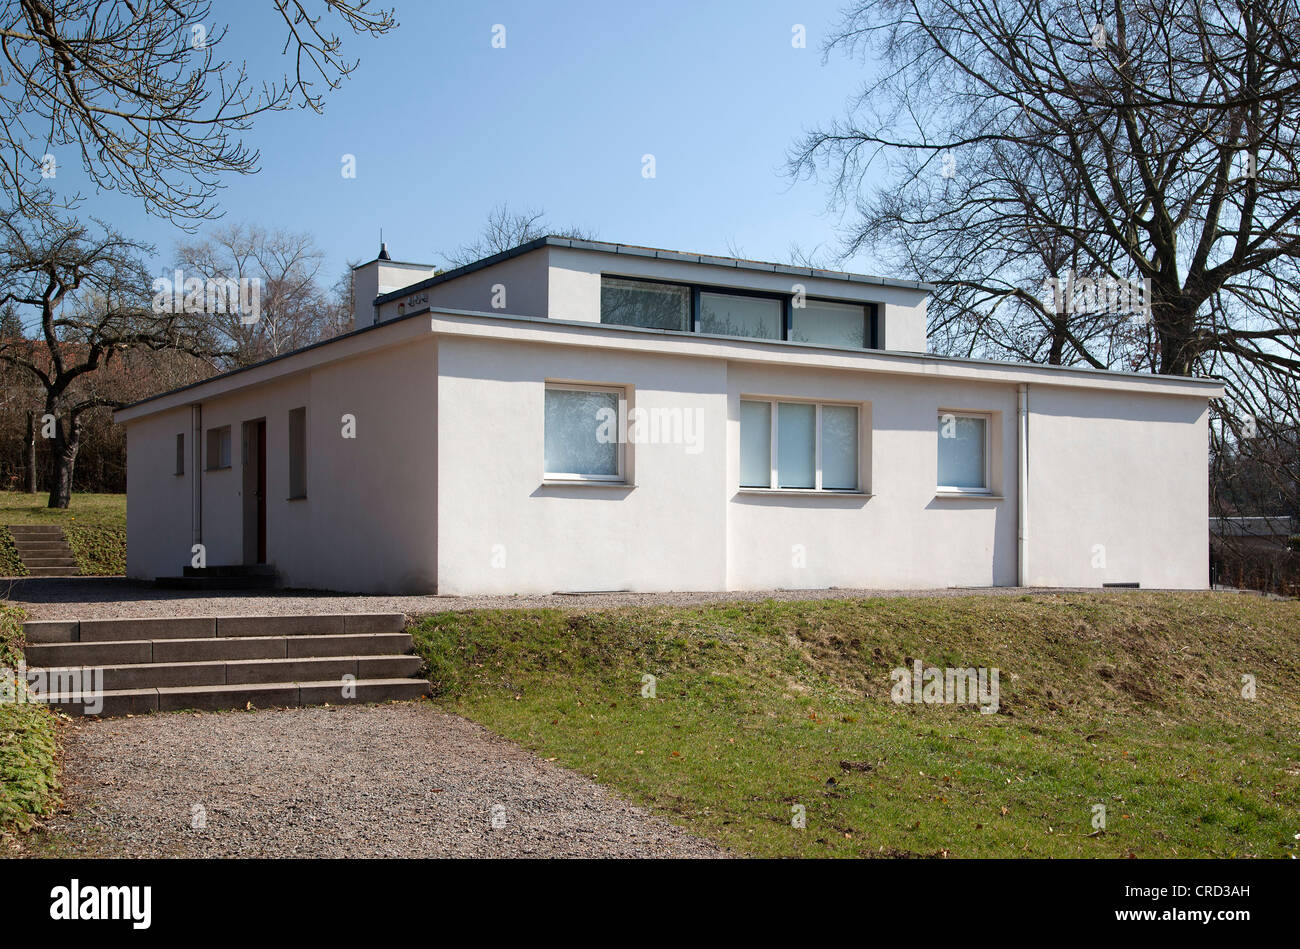 haus am horn model house of the weimar bauhaus a unesco world stock photo royalty free image. Black Bedroom Furniture Sets. Home Design Ideas